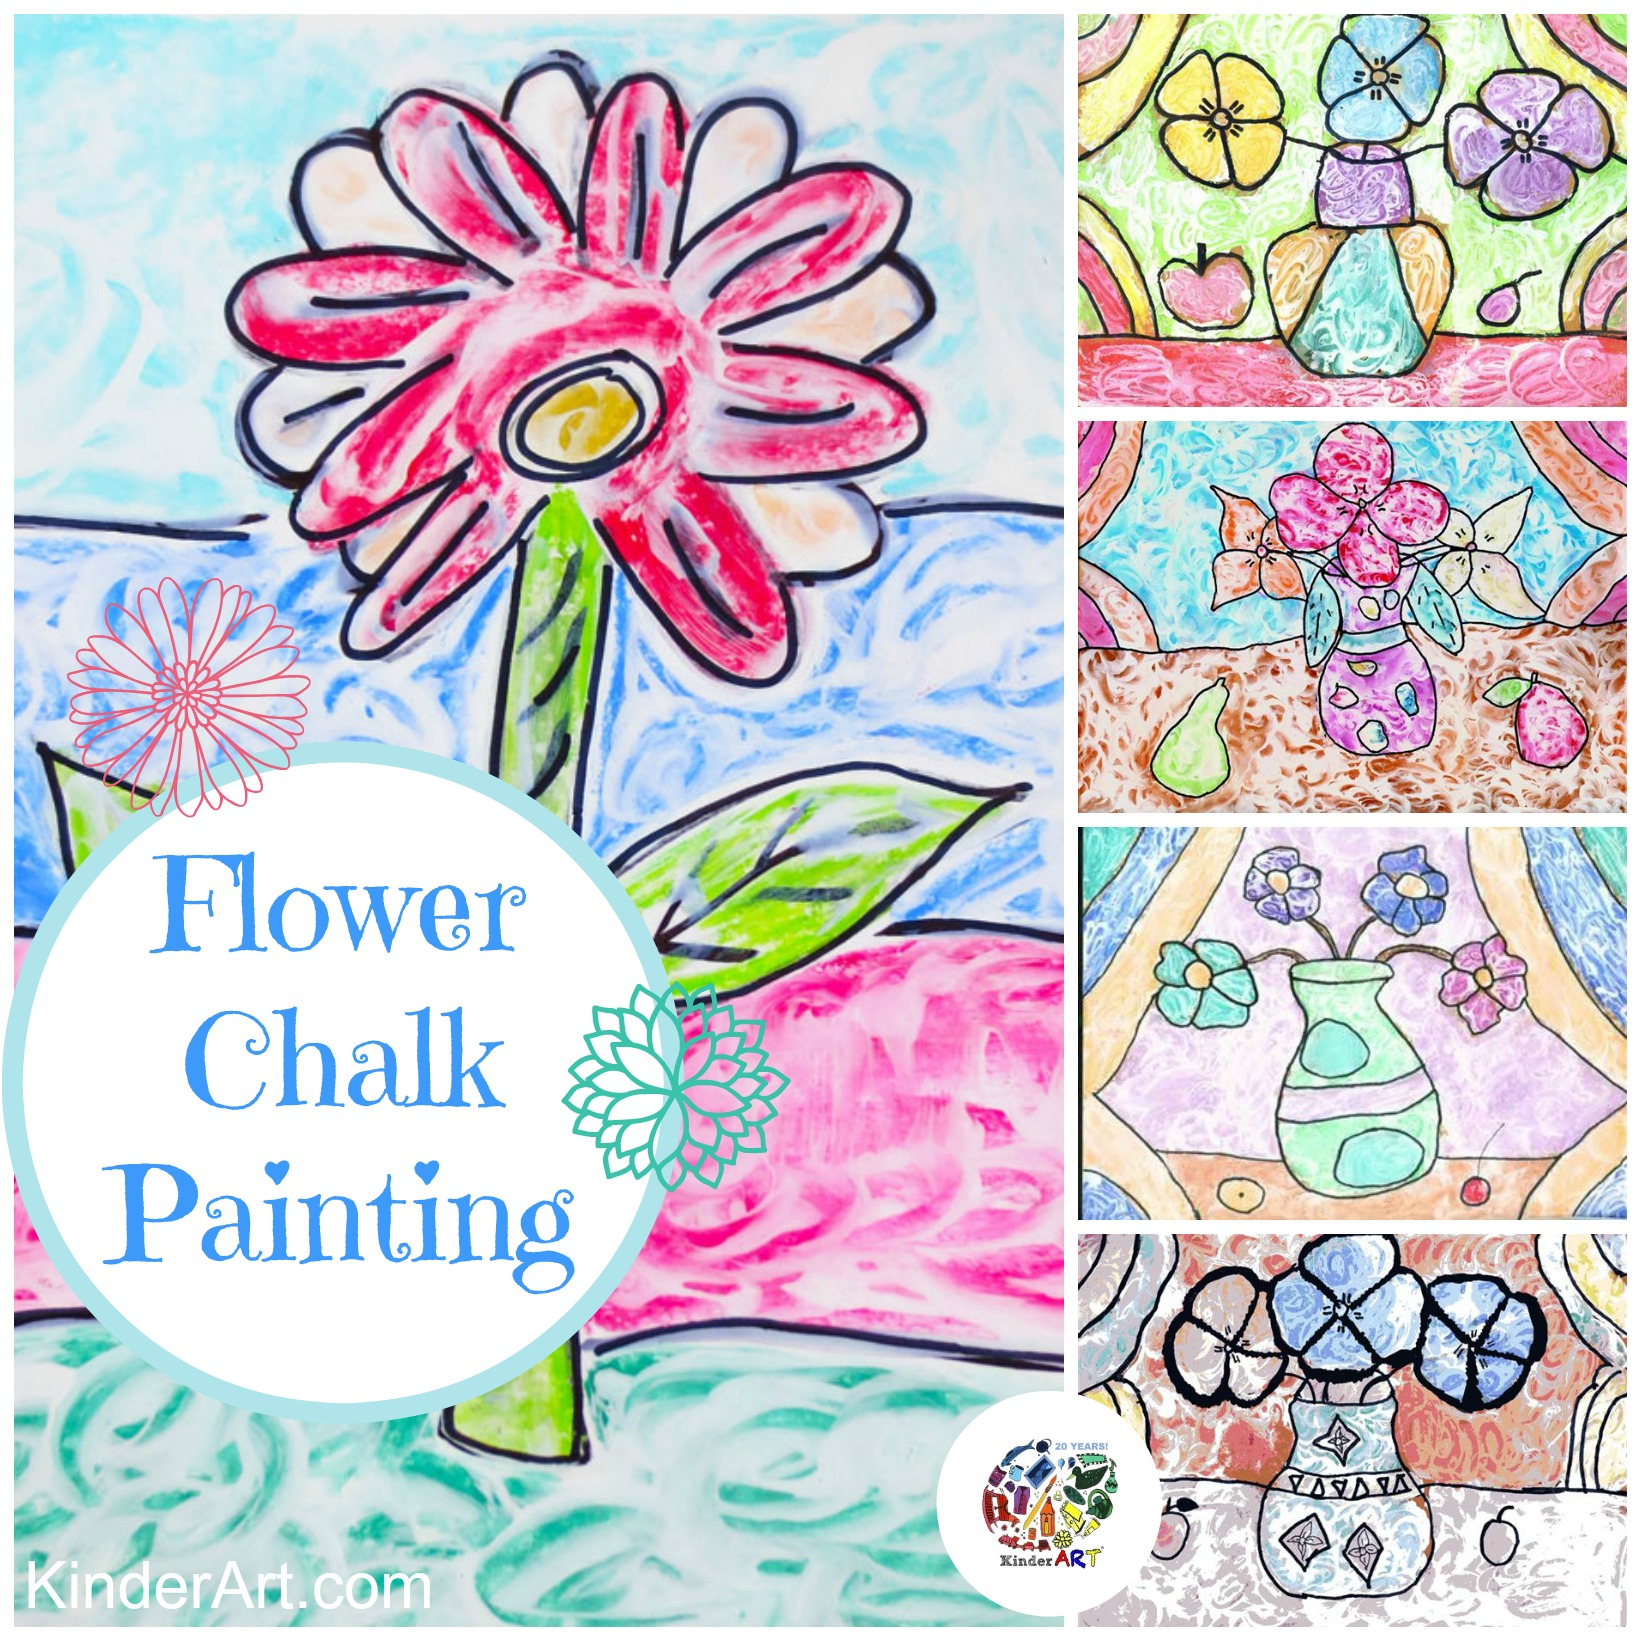 flower_chalk_painting